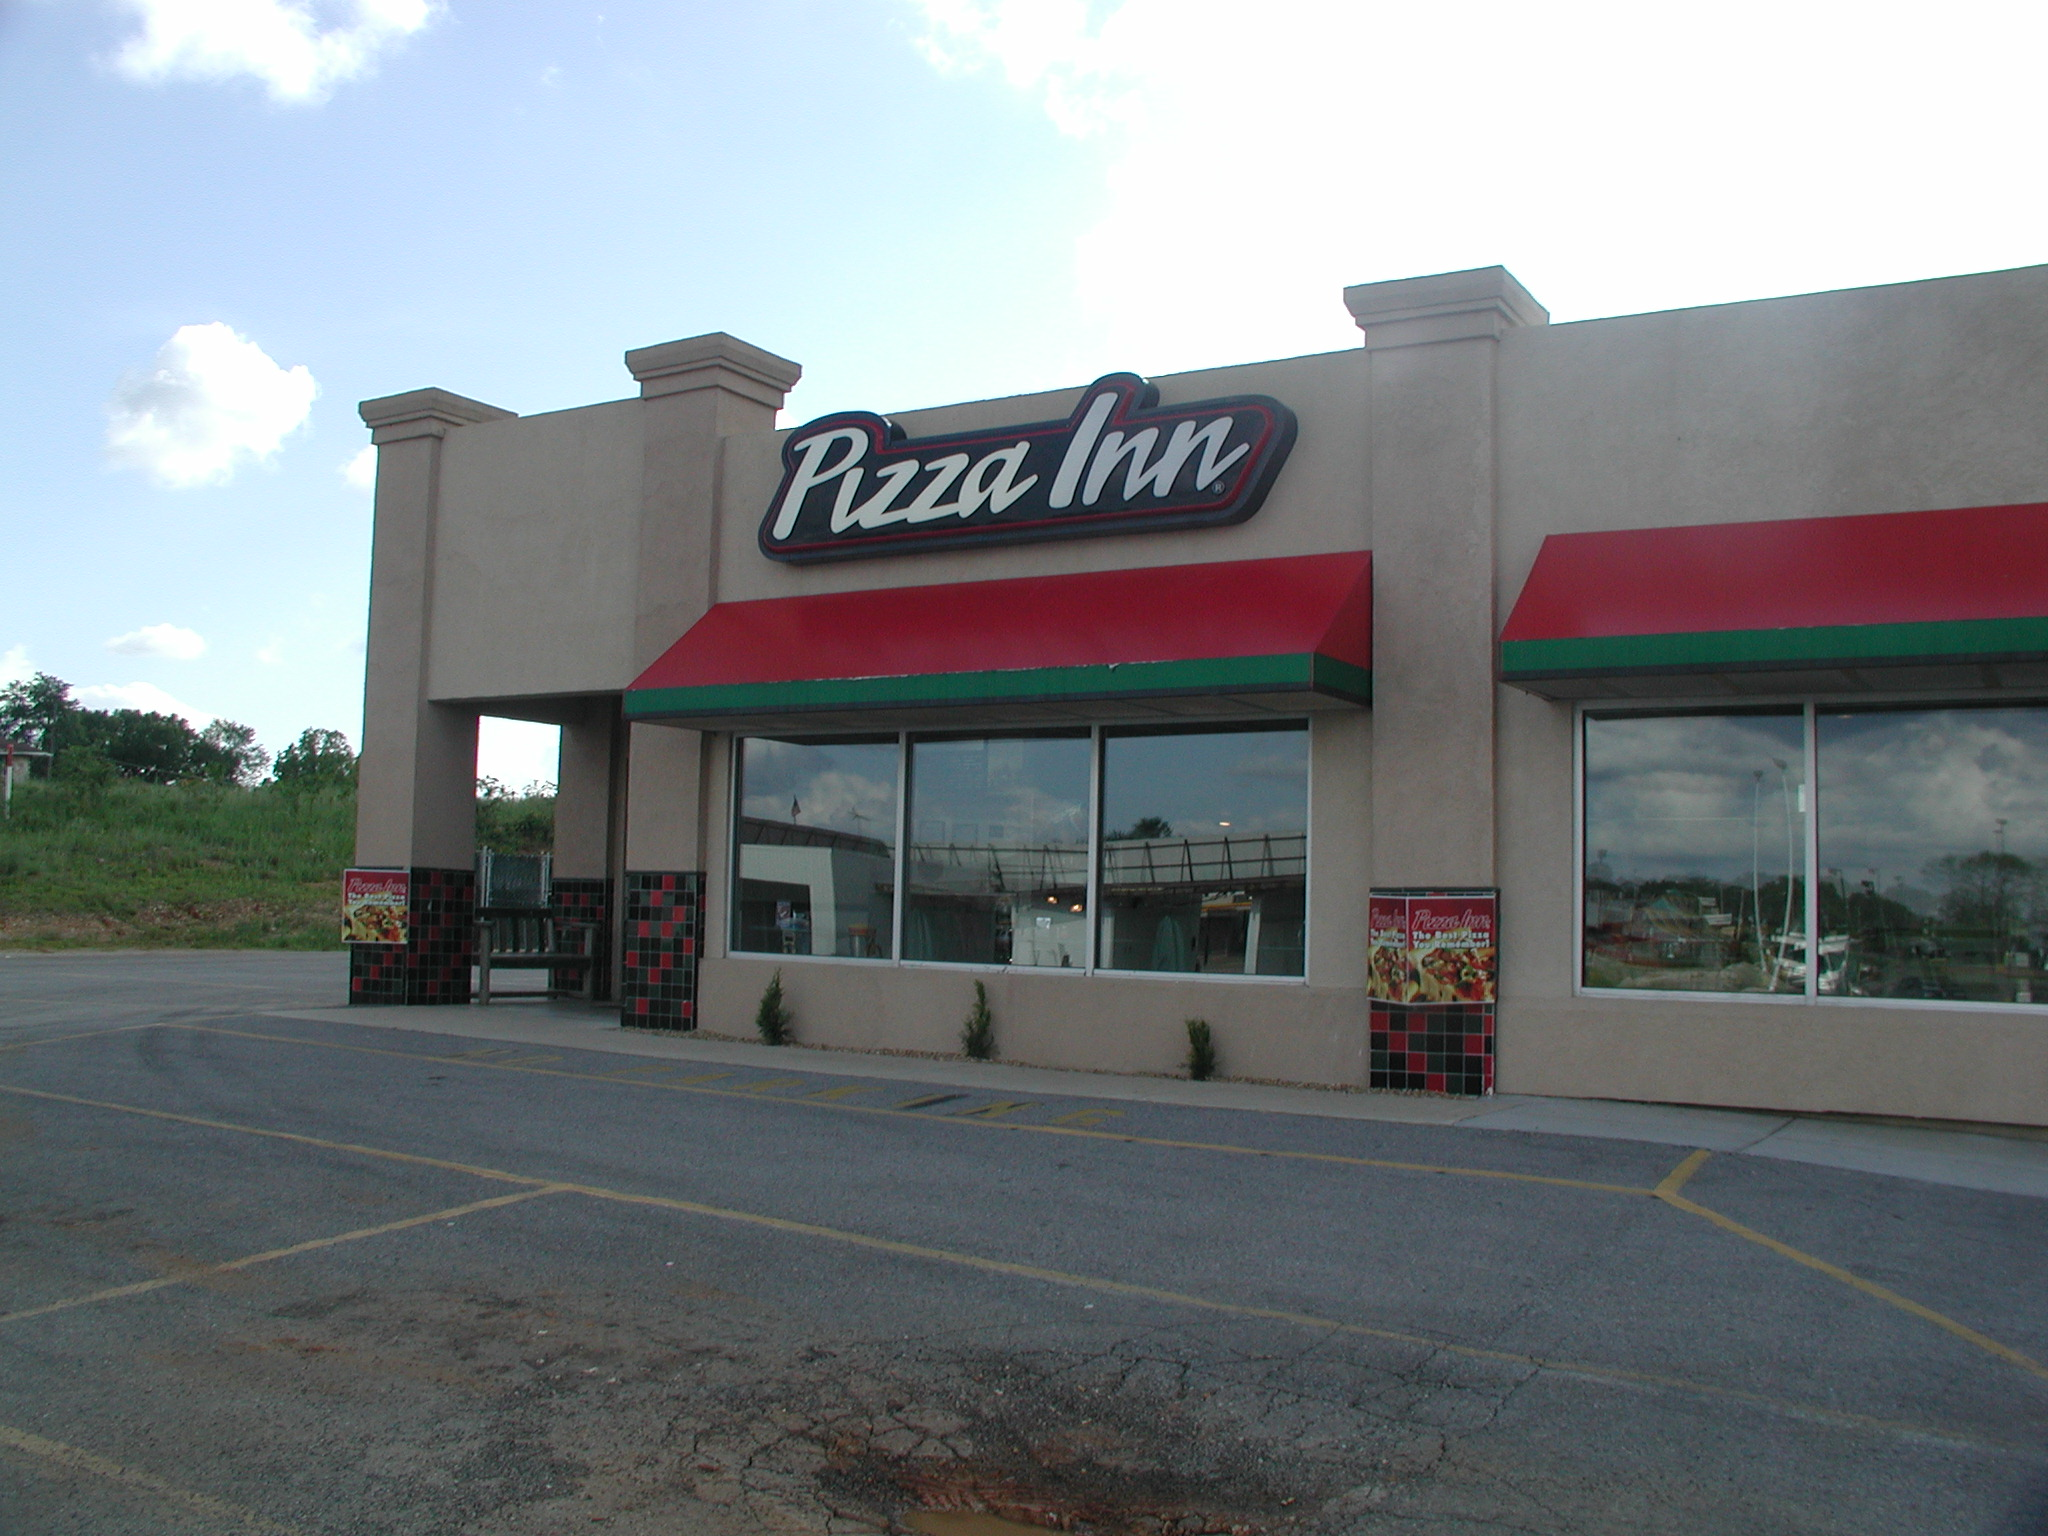 Pizza Inn is an American restaurant chain and international food franchise, specializing in American-style pan pizza and side dishes. The company is based in the Dallas suburb of The Colony, Texas.